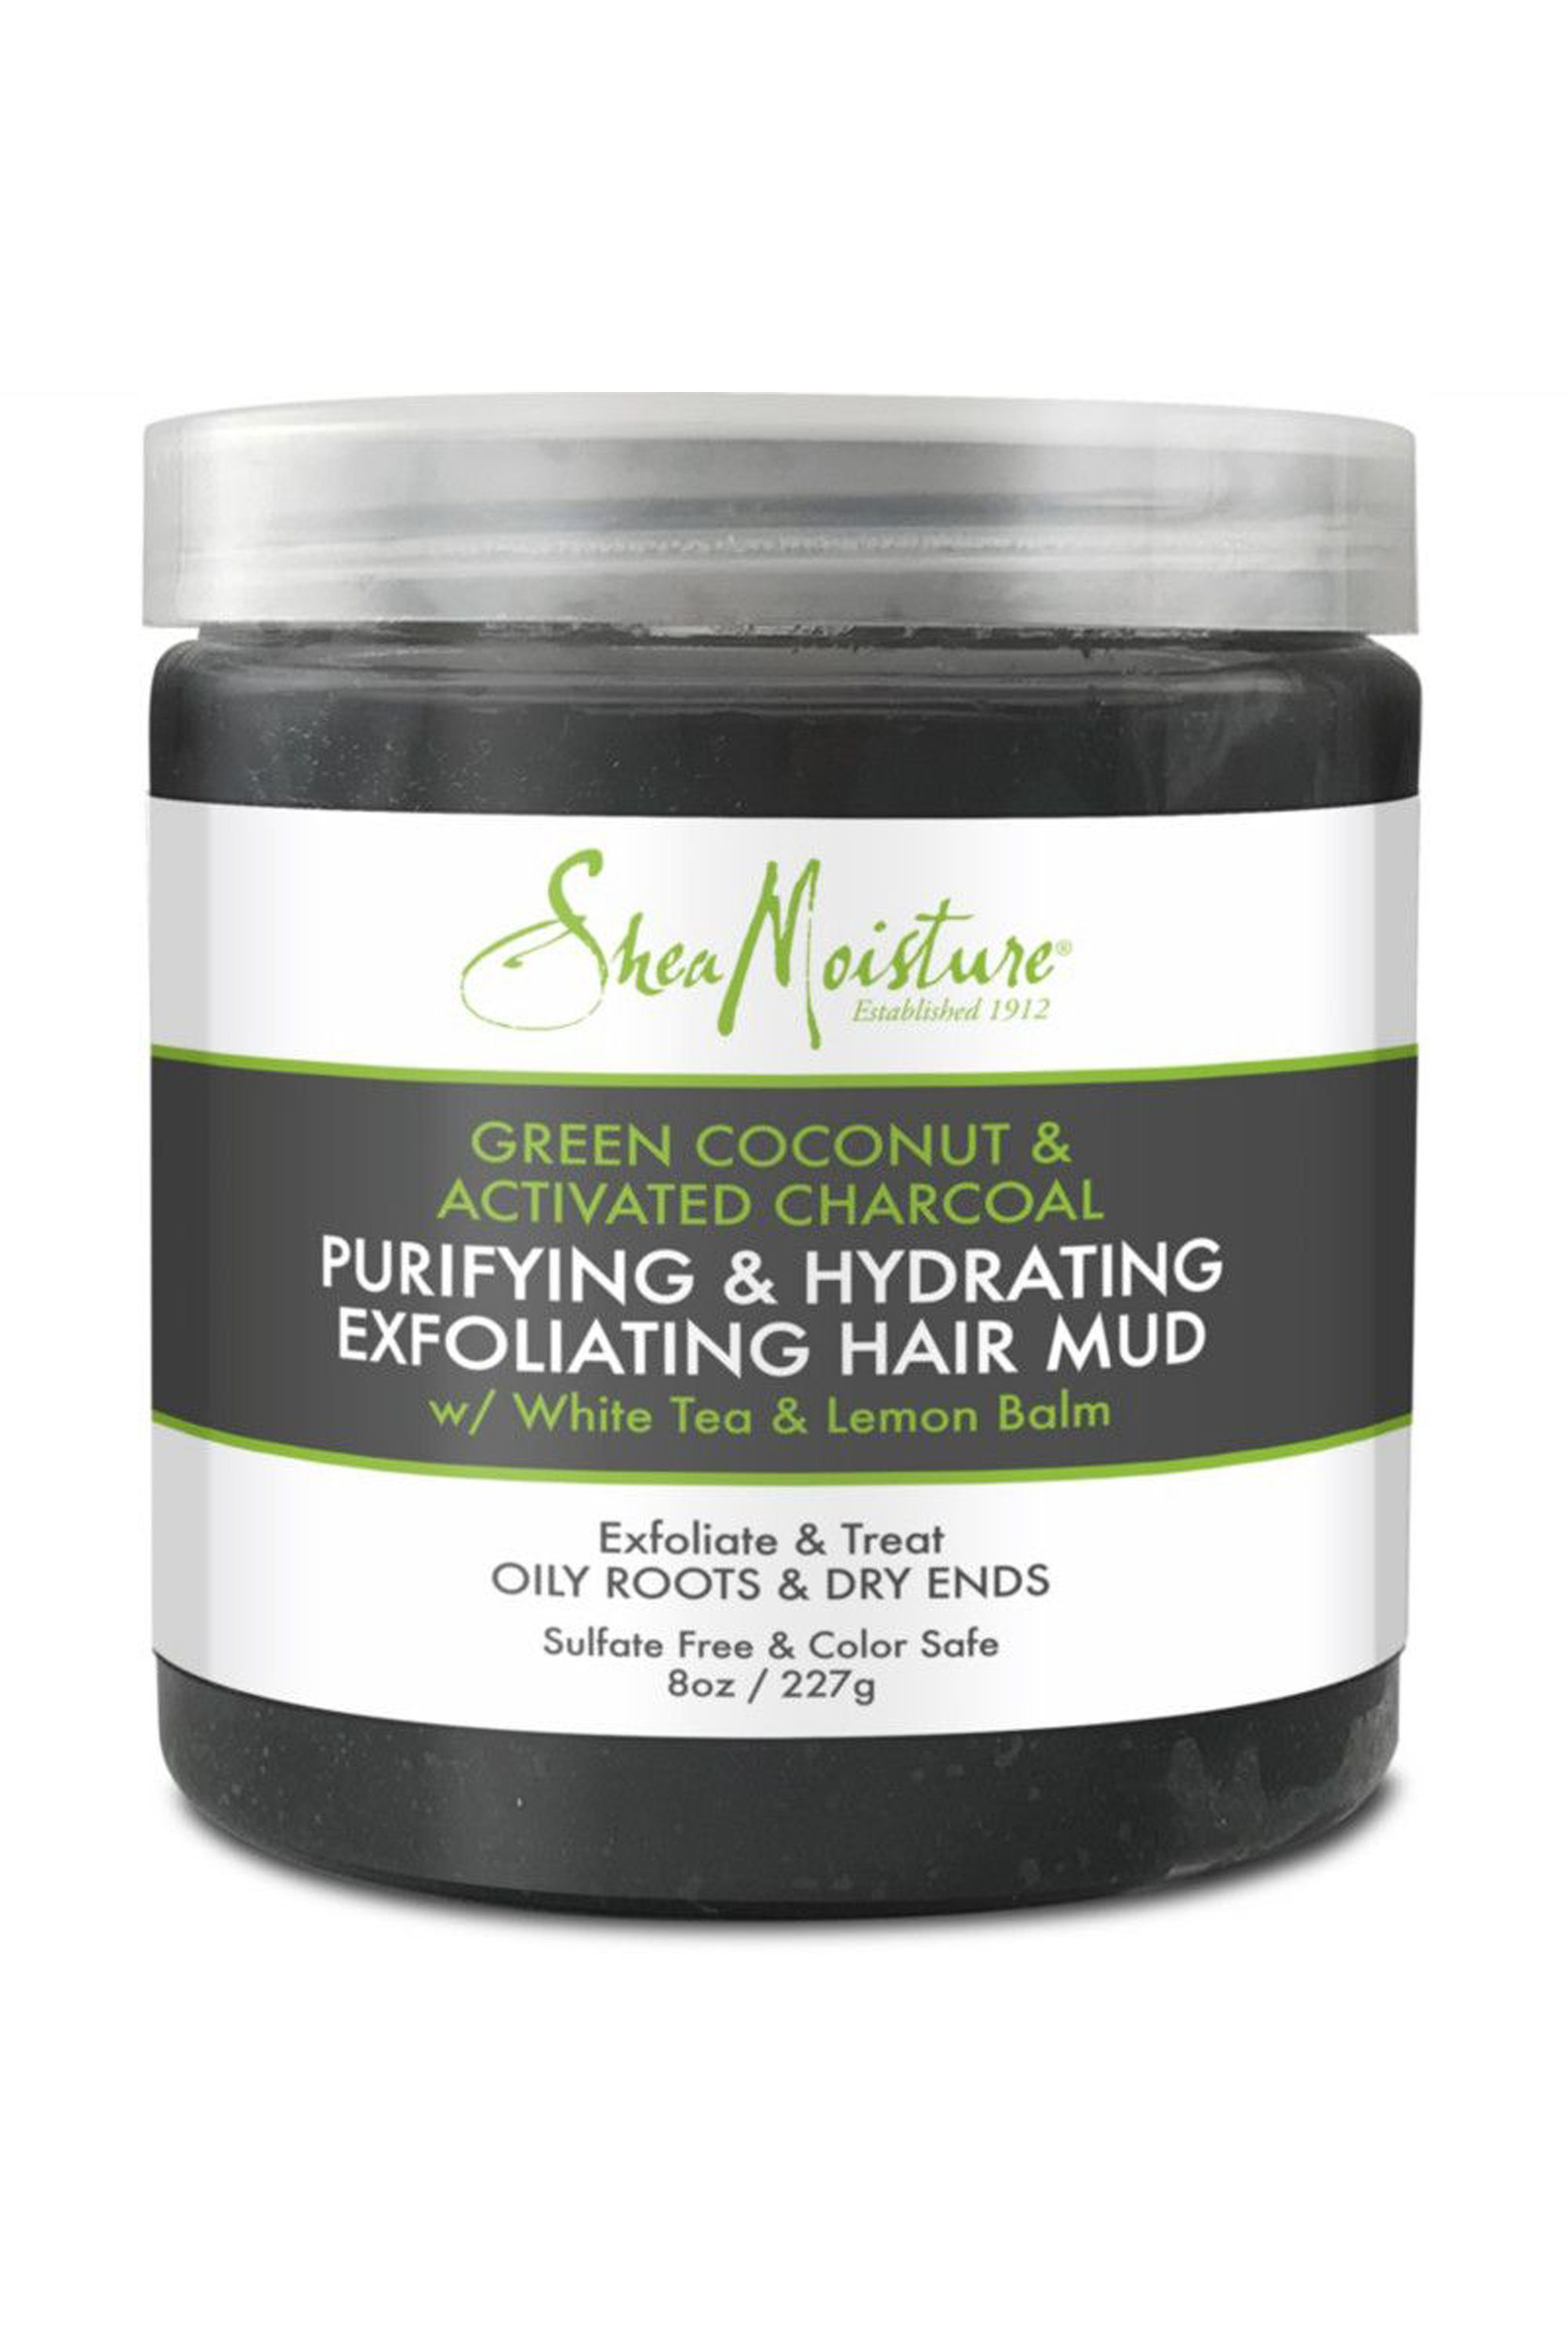 If You Have an Oily Scalp